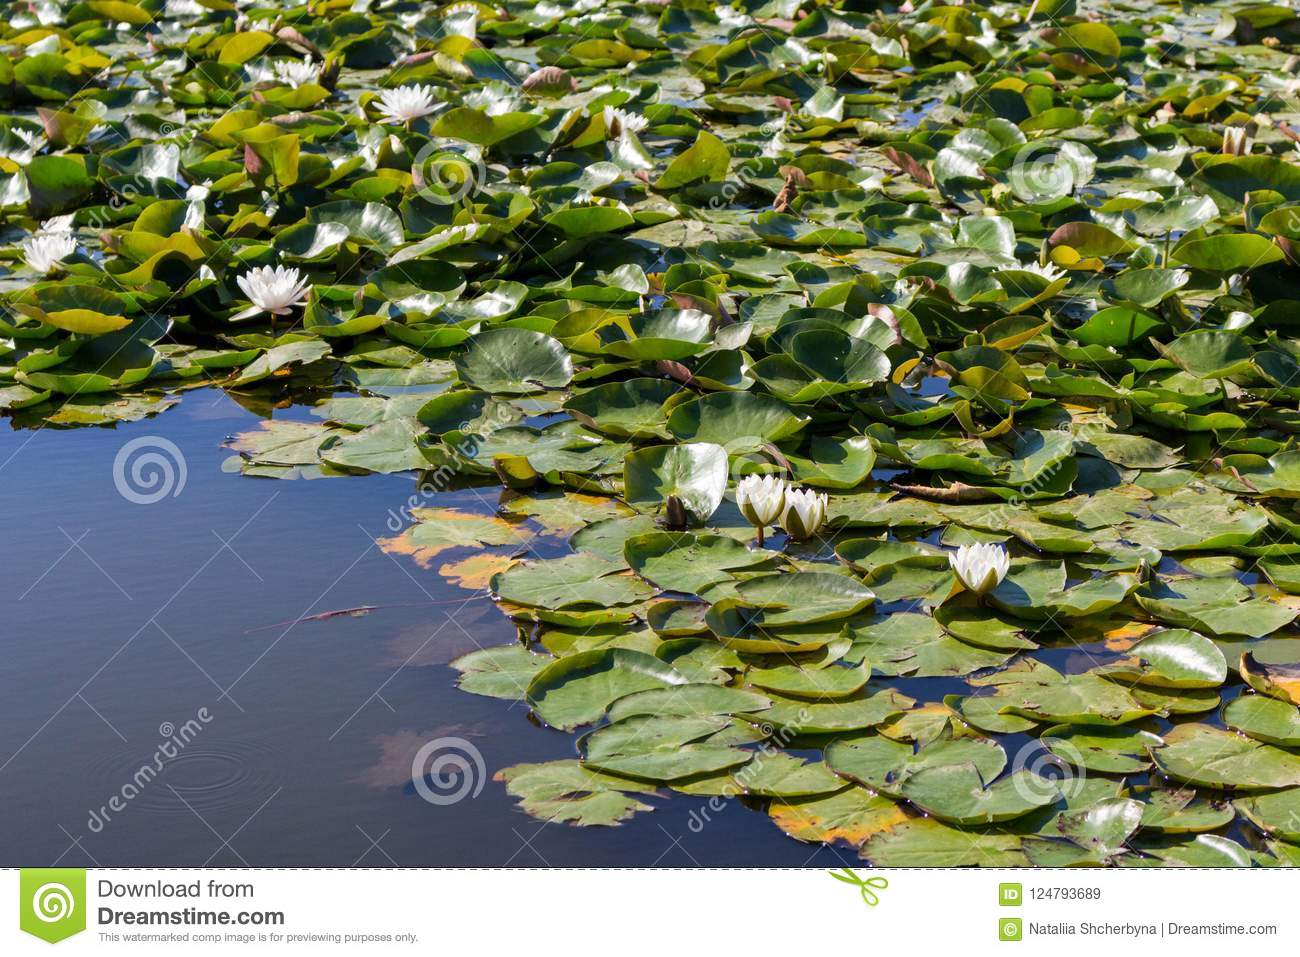 White water lilies with green leaves in forest lake. NAture and purity concept. Summer forest and pond.